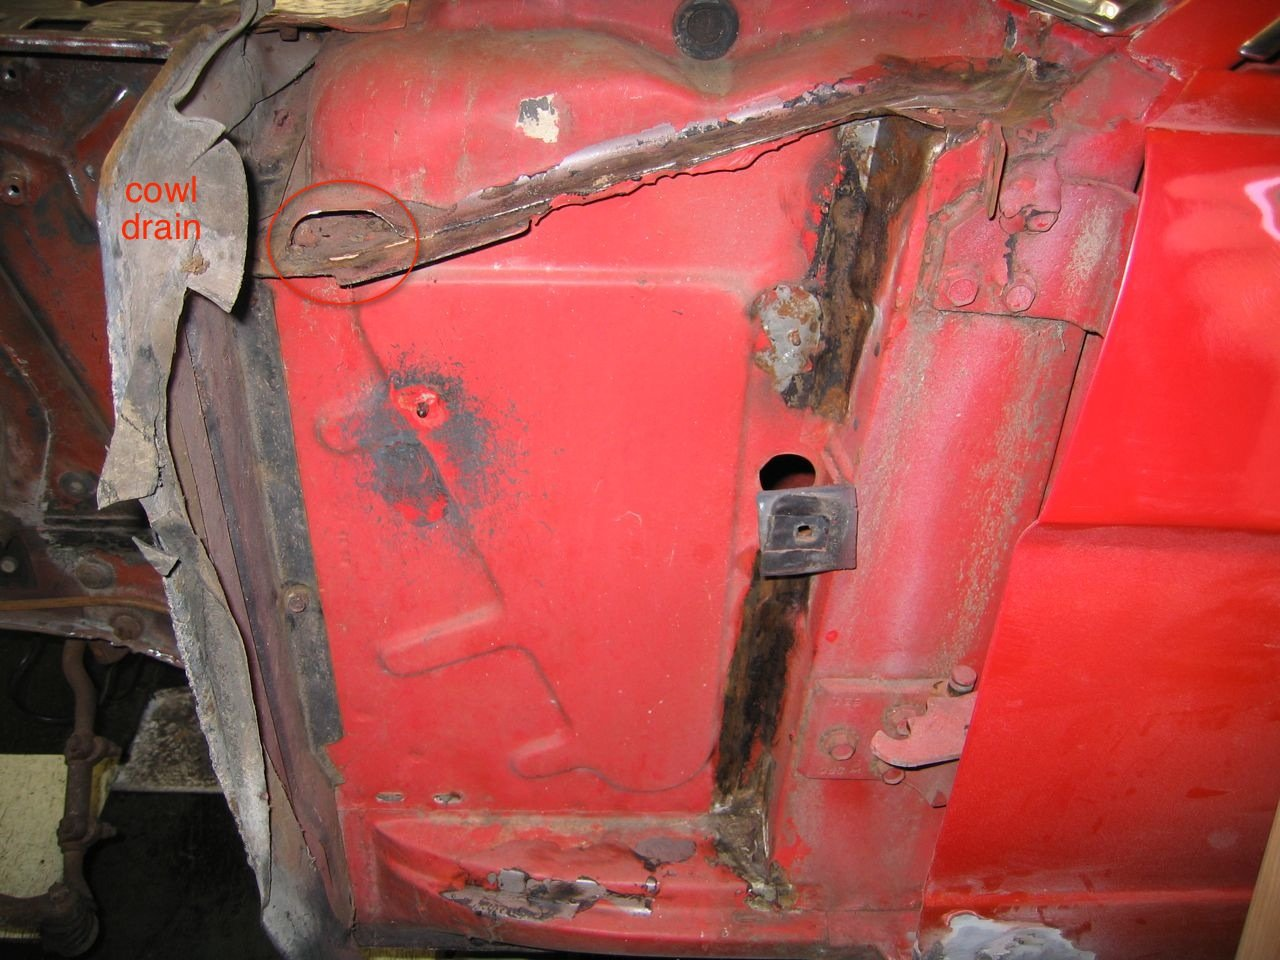 04 Mustang Gt >> 1968 Mustang cowl vent drain lines/holes? - Ford Mustang Forum